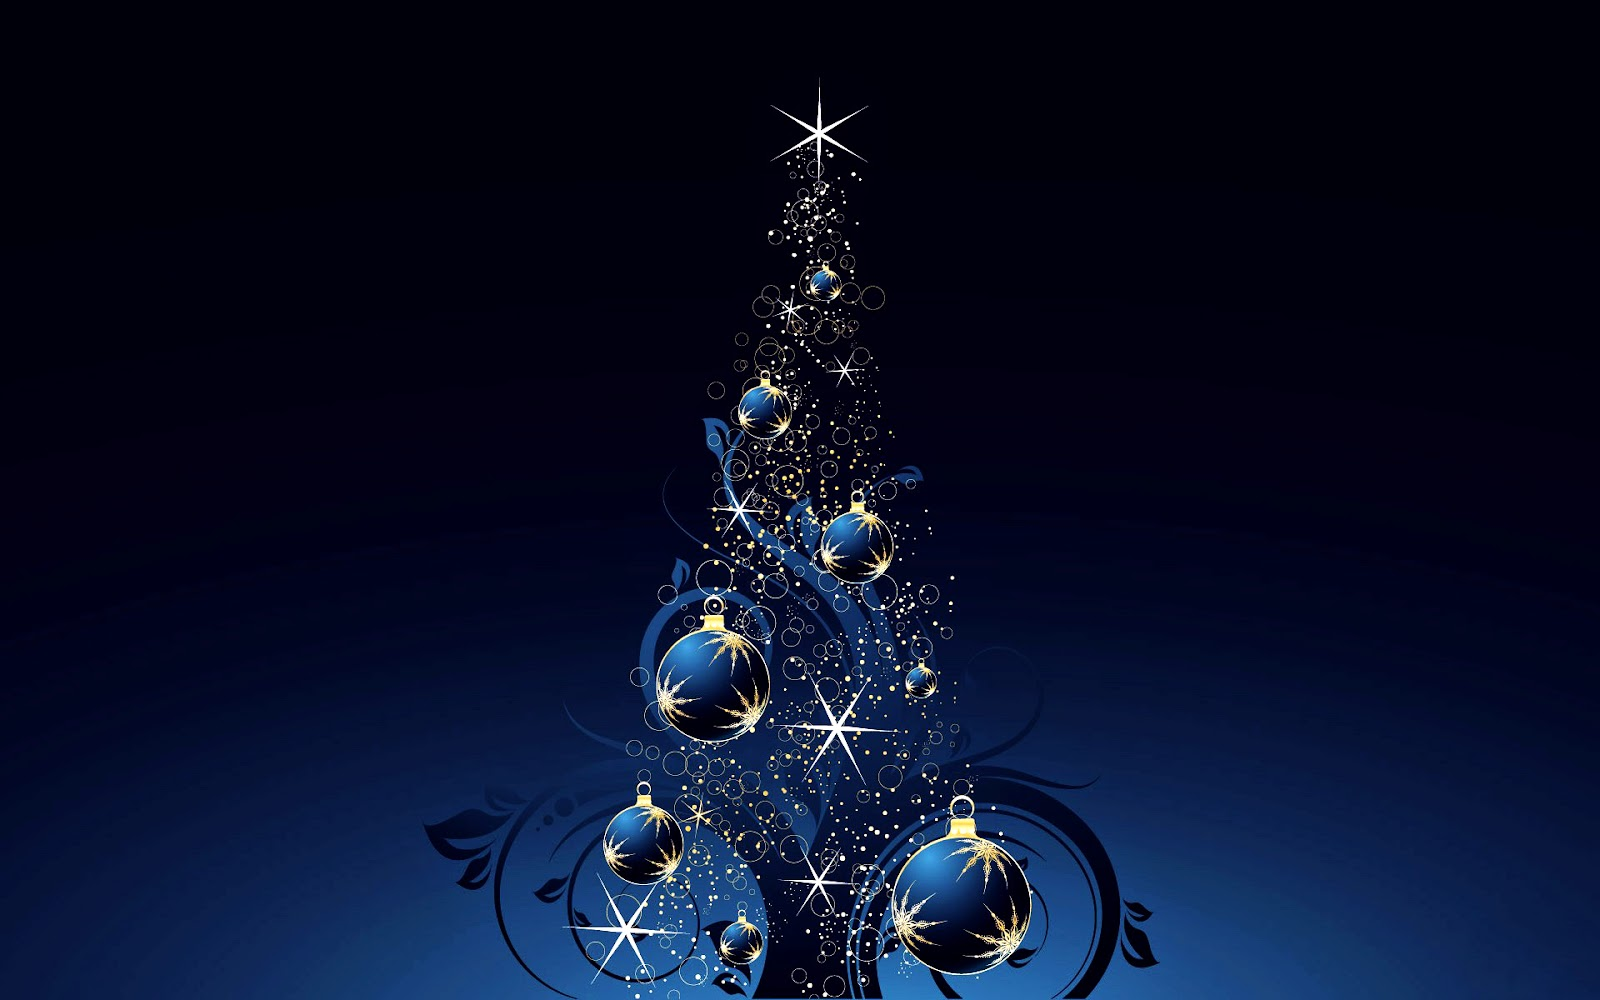 Christmas-tree-abstract-vector-design-image-with-baubles-balls-dark-night-background.jpg